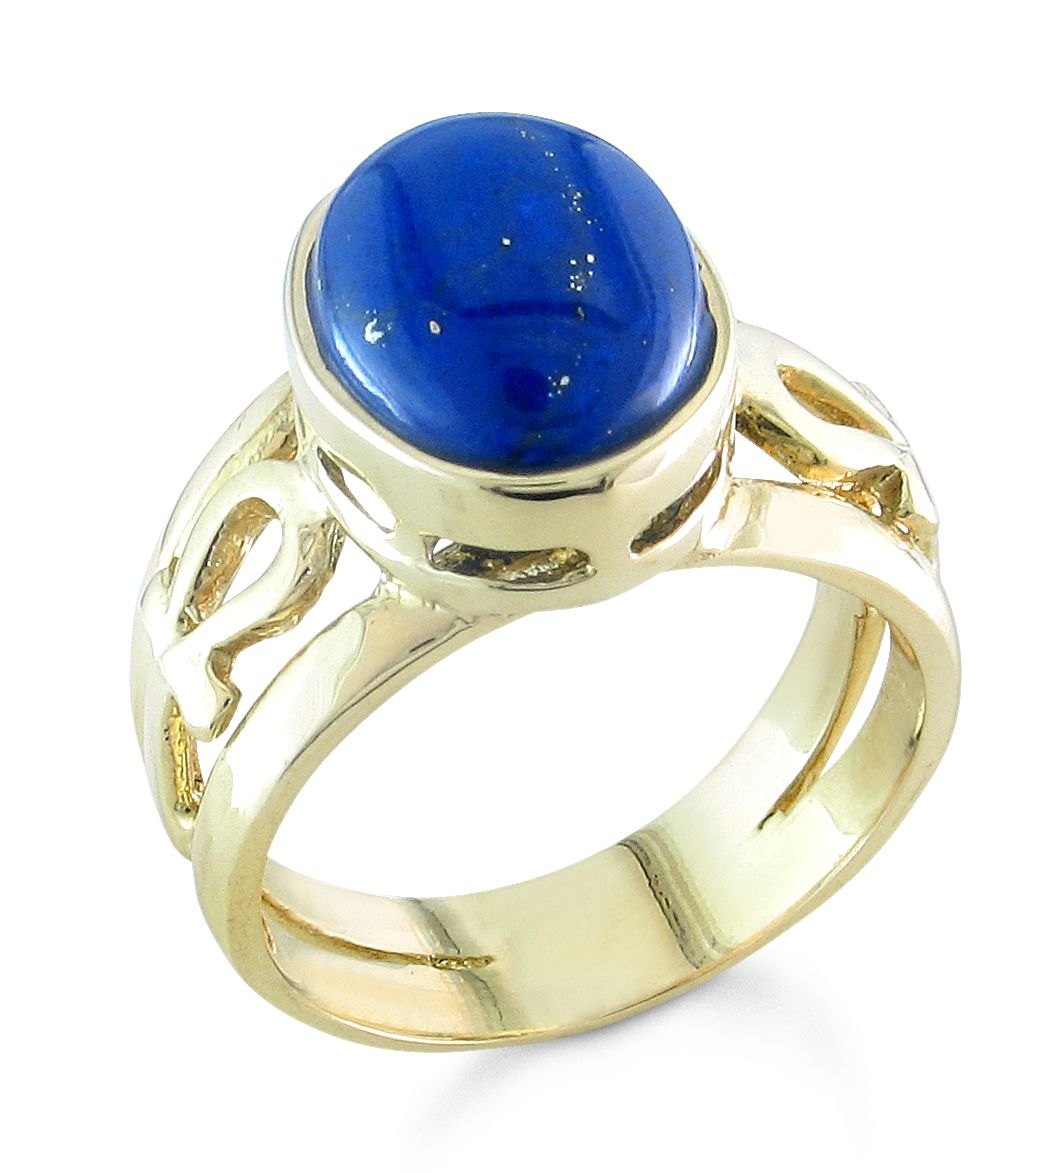 Trendy Lapiz Ankh Ring Lapis Double Sided Ankh Ring k Yellow Gold Beautiful Lapis from Afghanistan